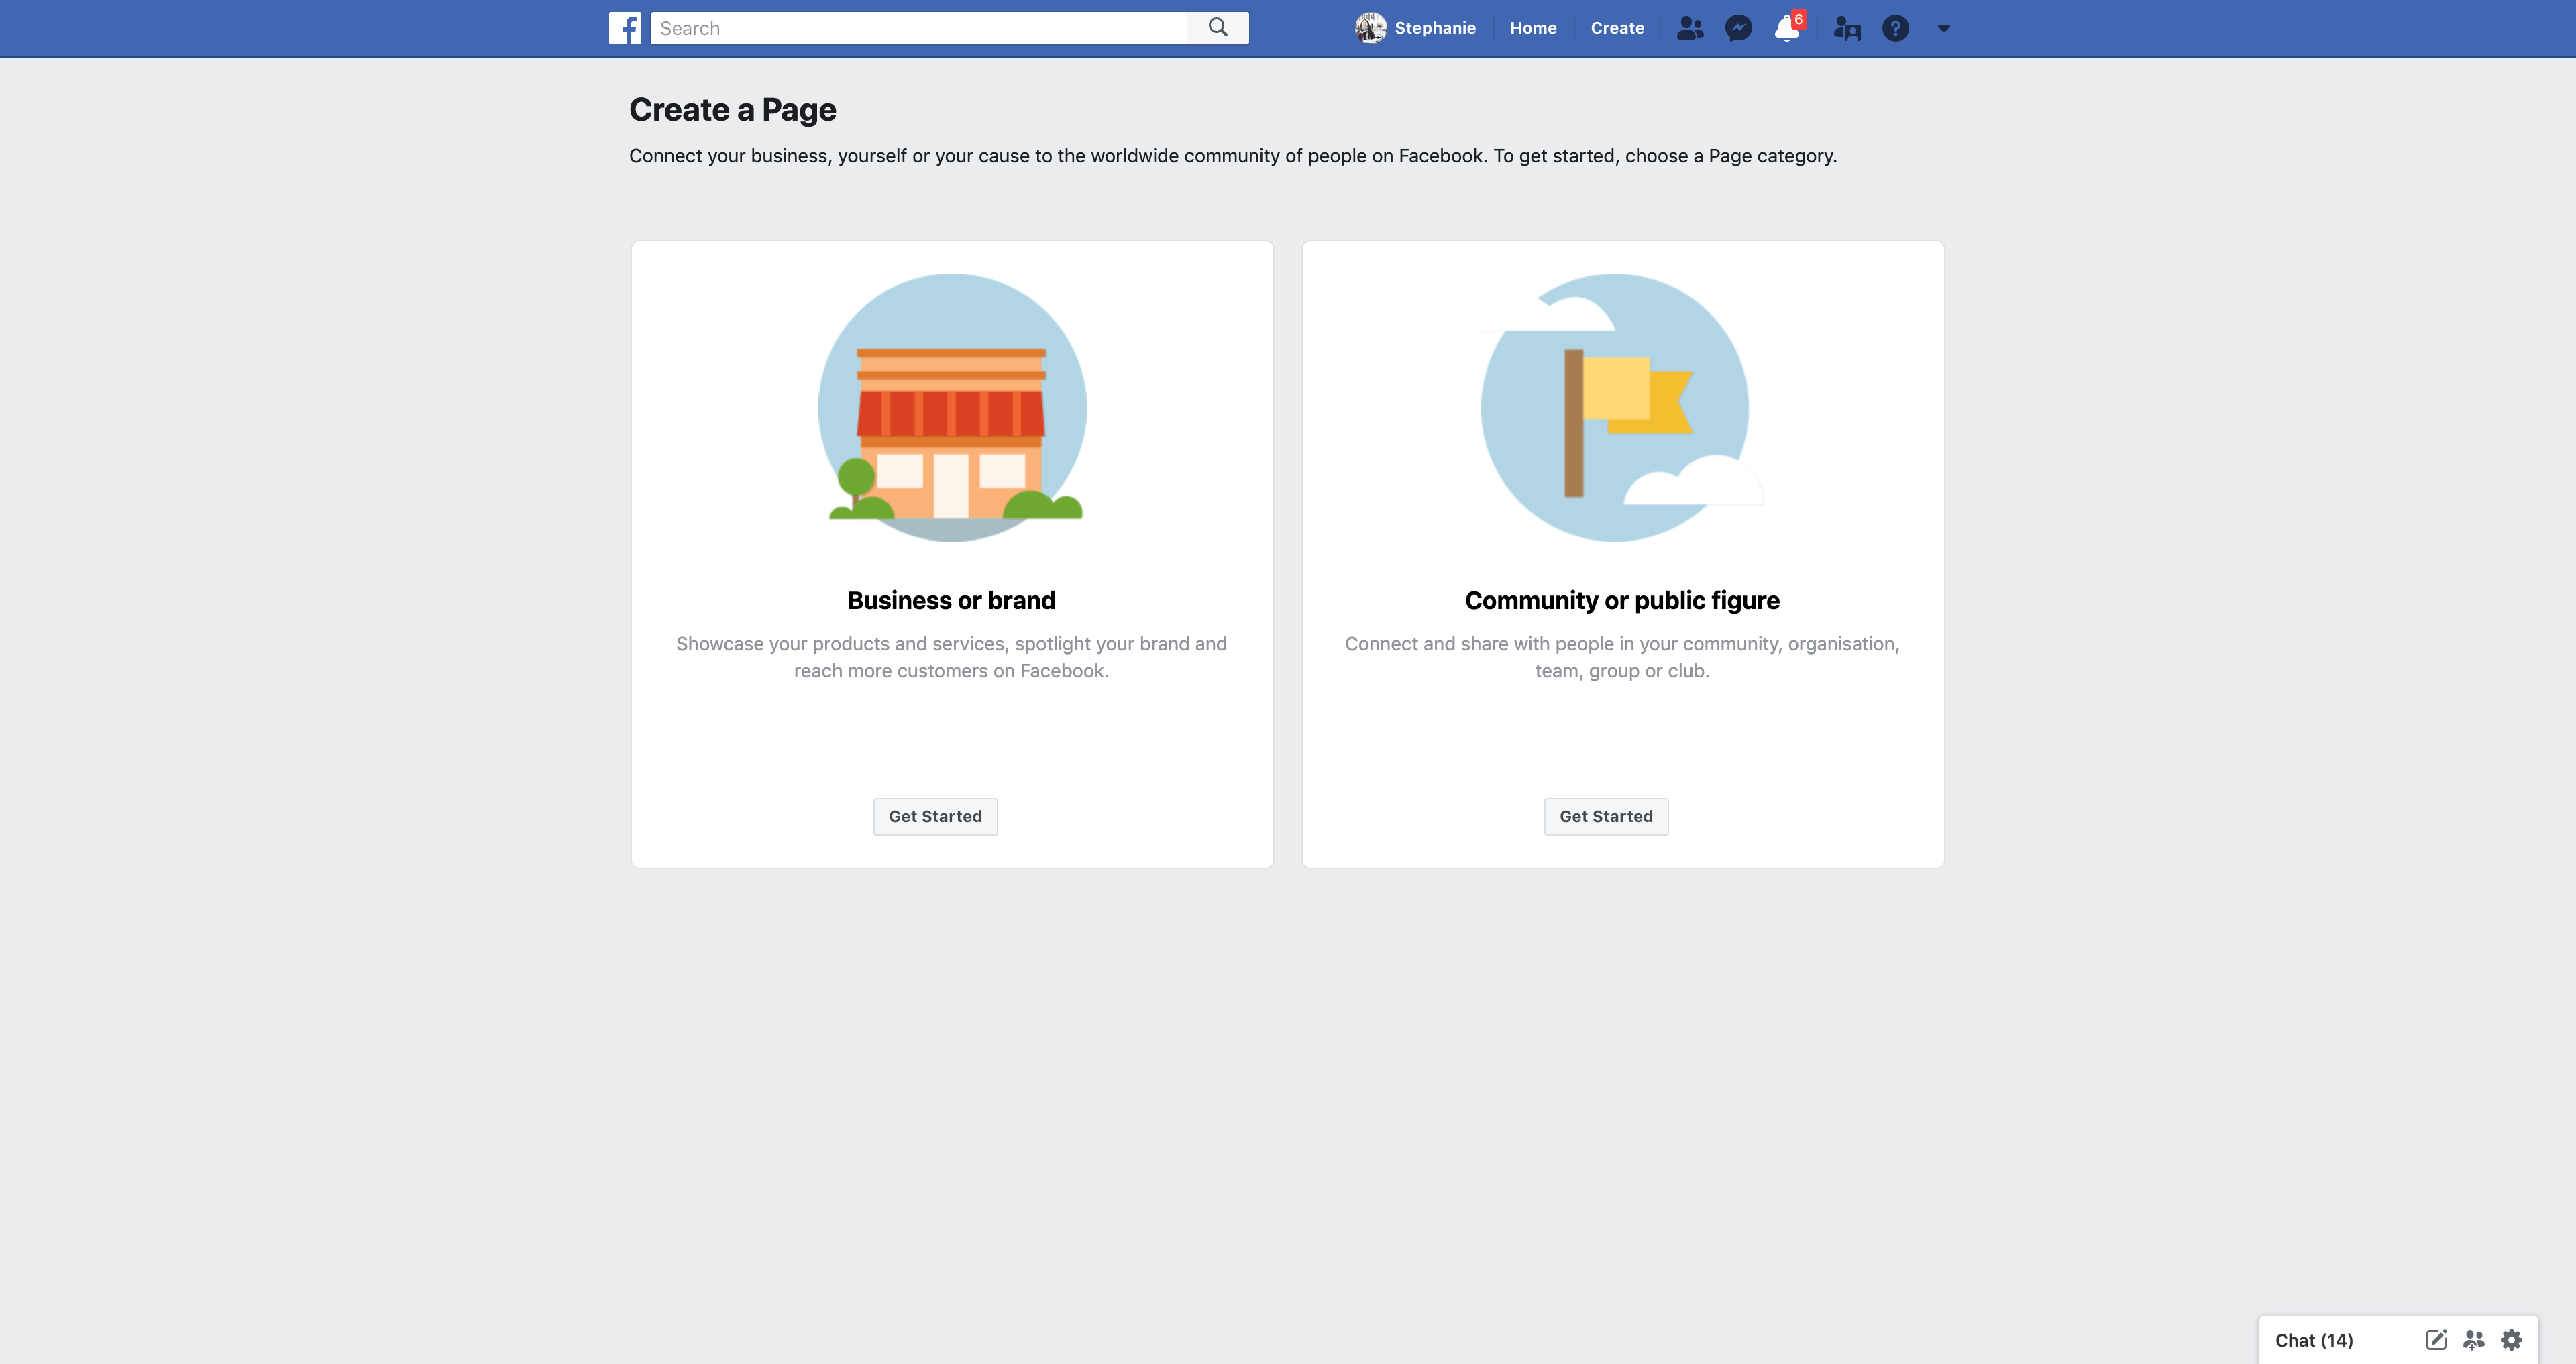 Create a Page by Facebook